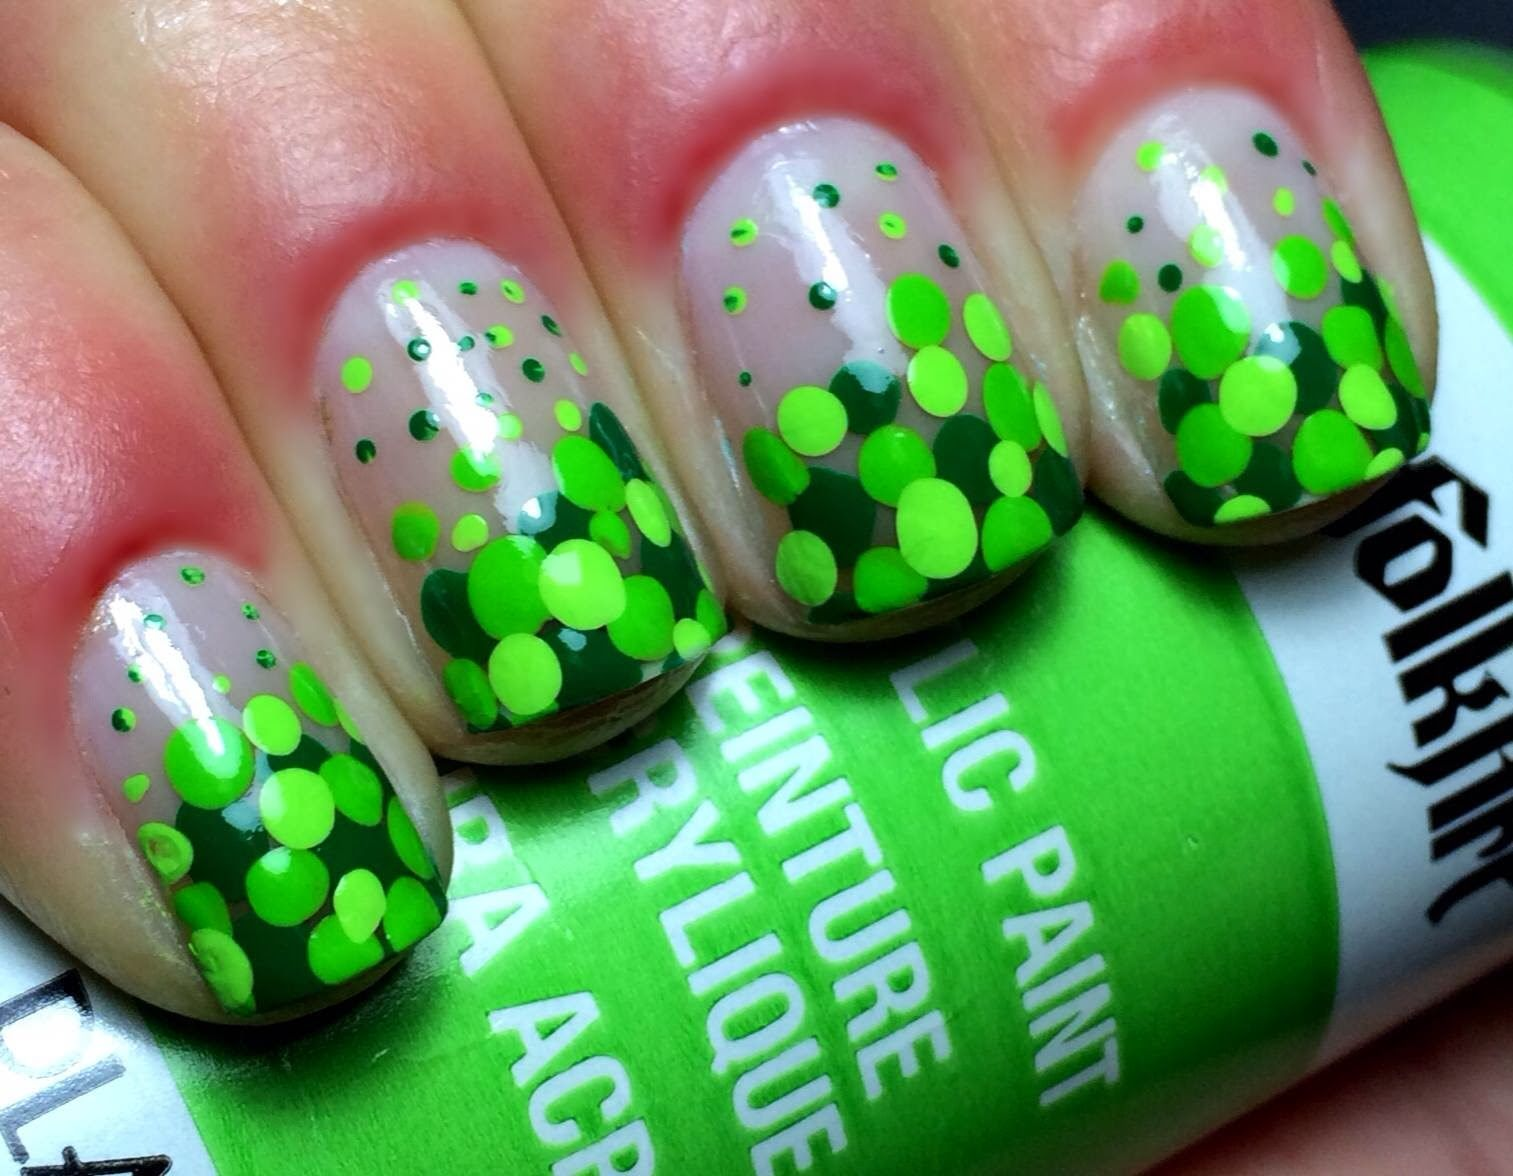 Nails by an OPI Addict: A Little Dotty | Nails by an OPI Addict ...